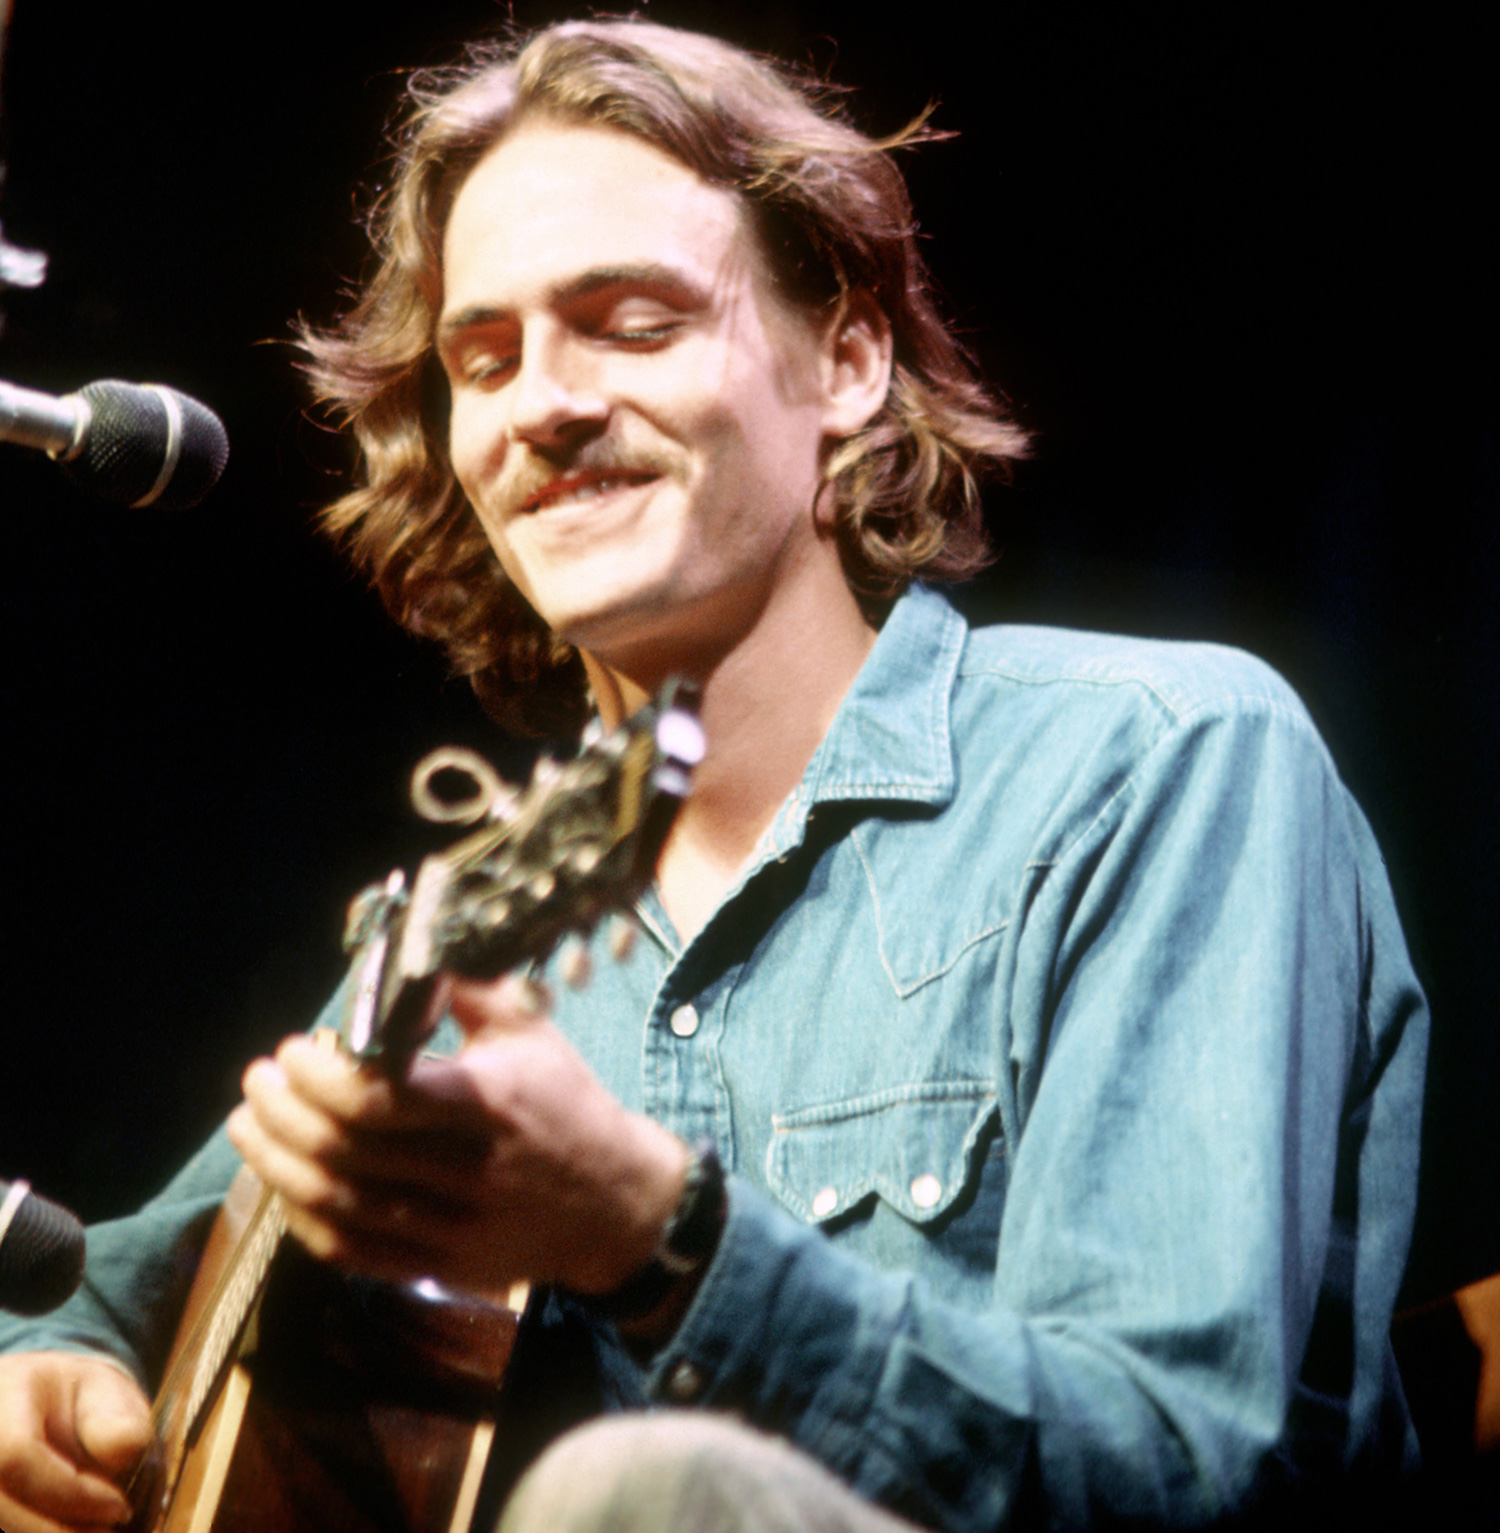 James Taylor performs onstage at the Mariposa Folk Festival in 1970 in Orillia, Ontario, Canada